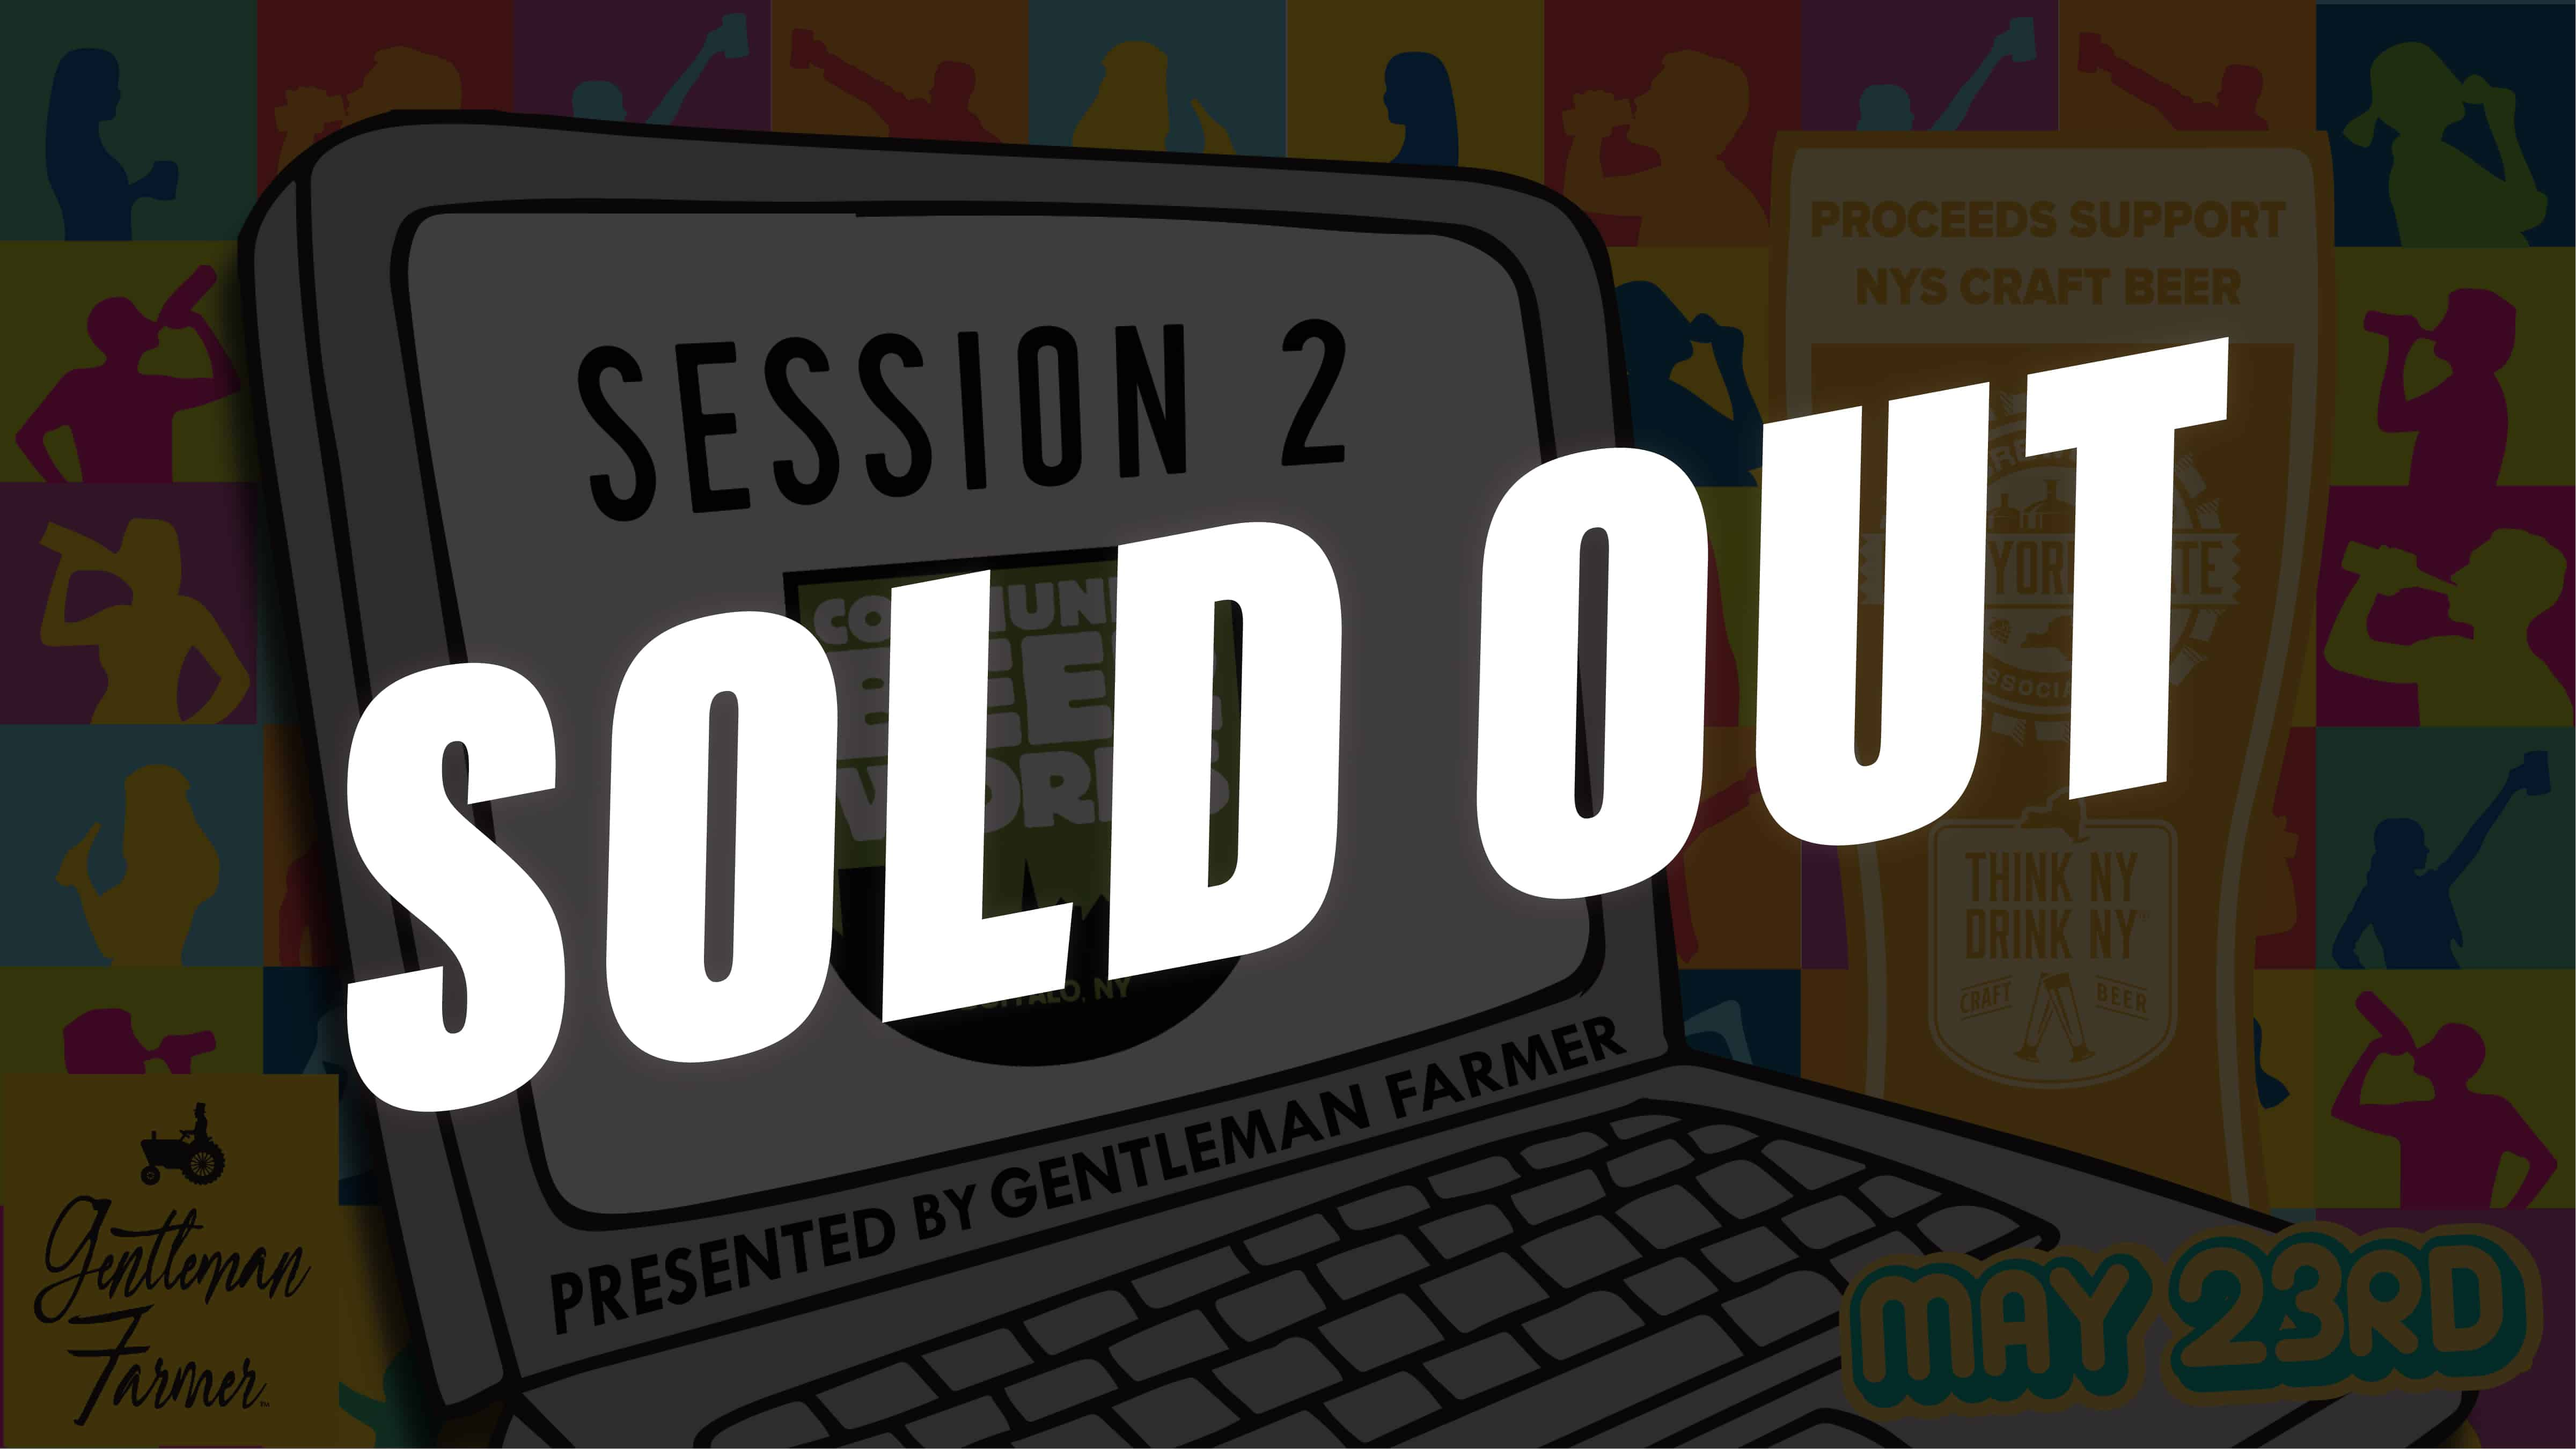 VTE_Session 2_16x9_SOLD OUT